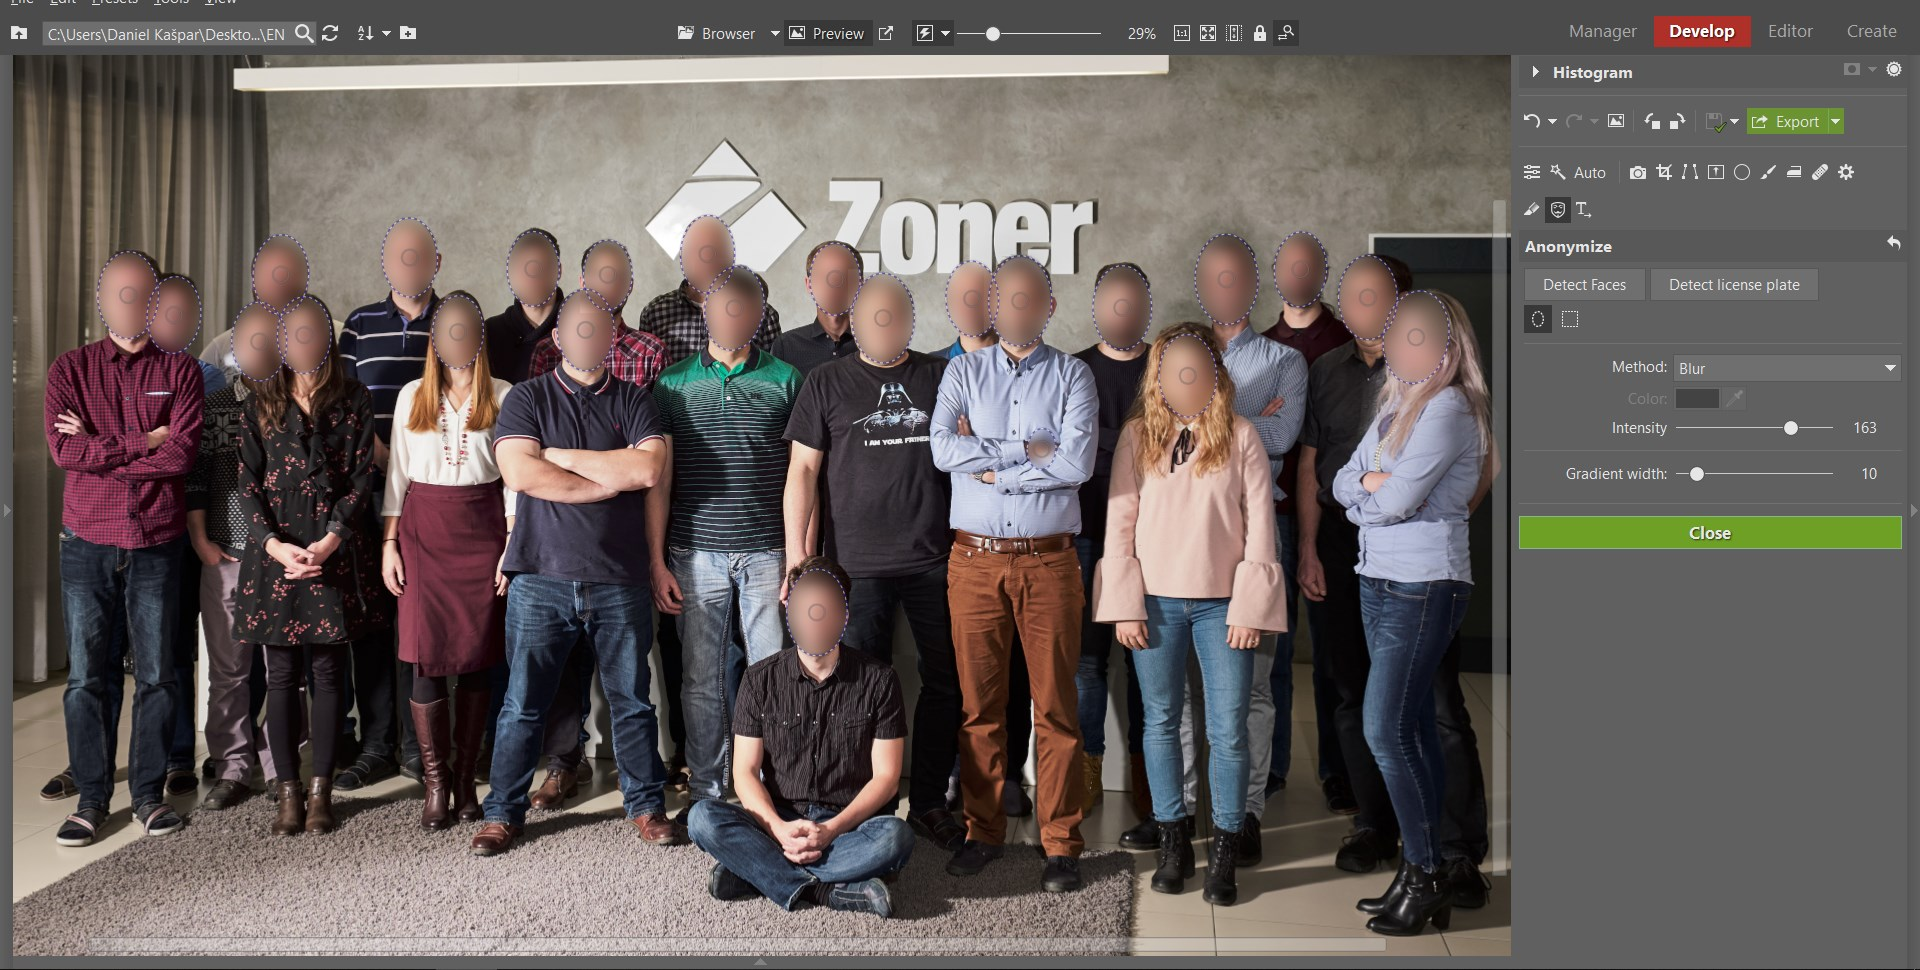 How to Hide Faces and License Plates: Learn to Use Anonymization